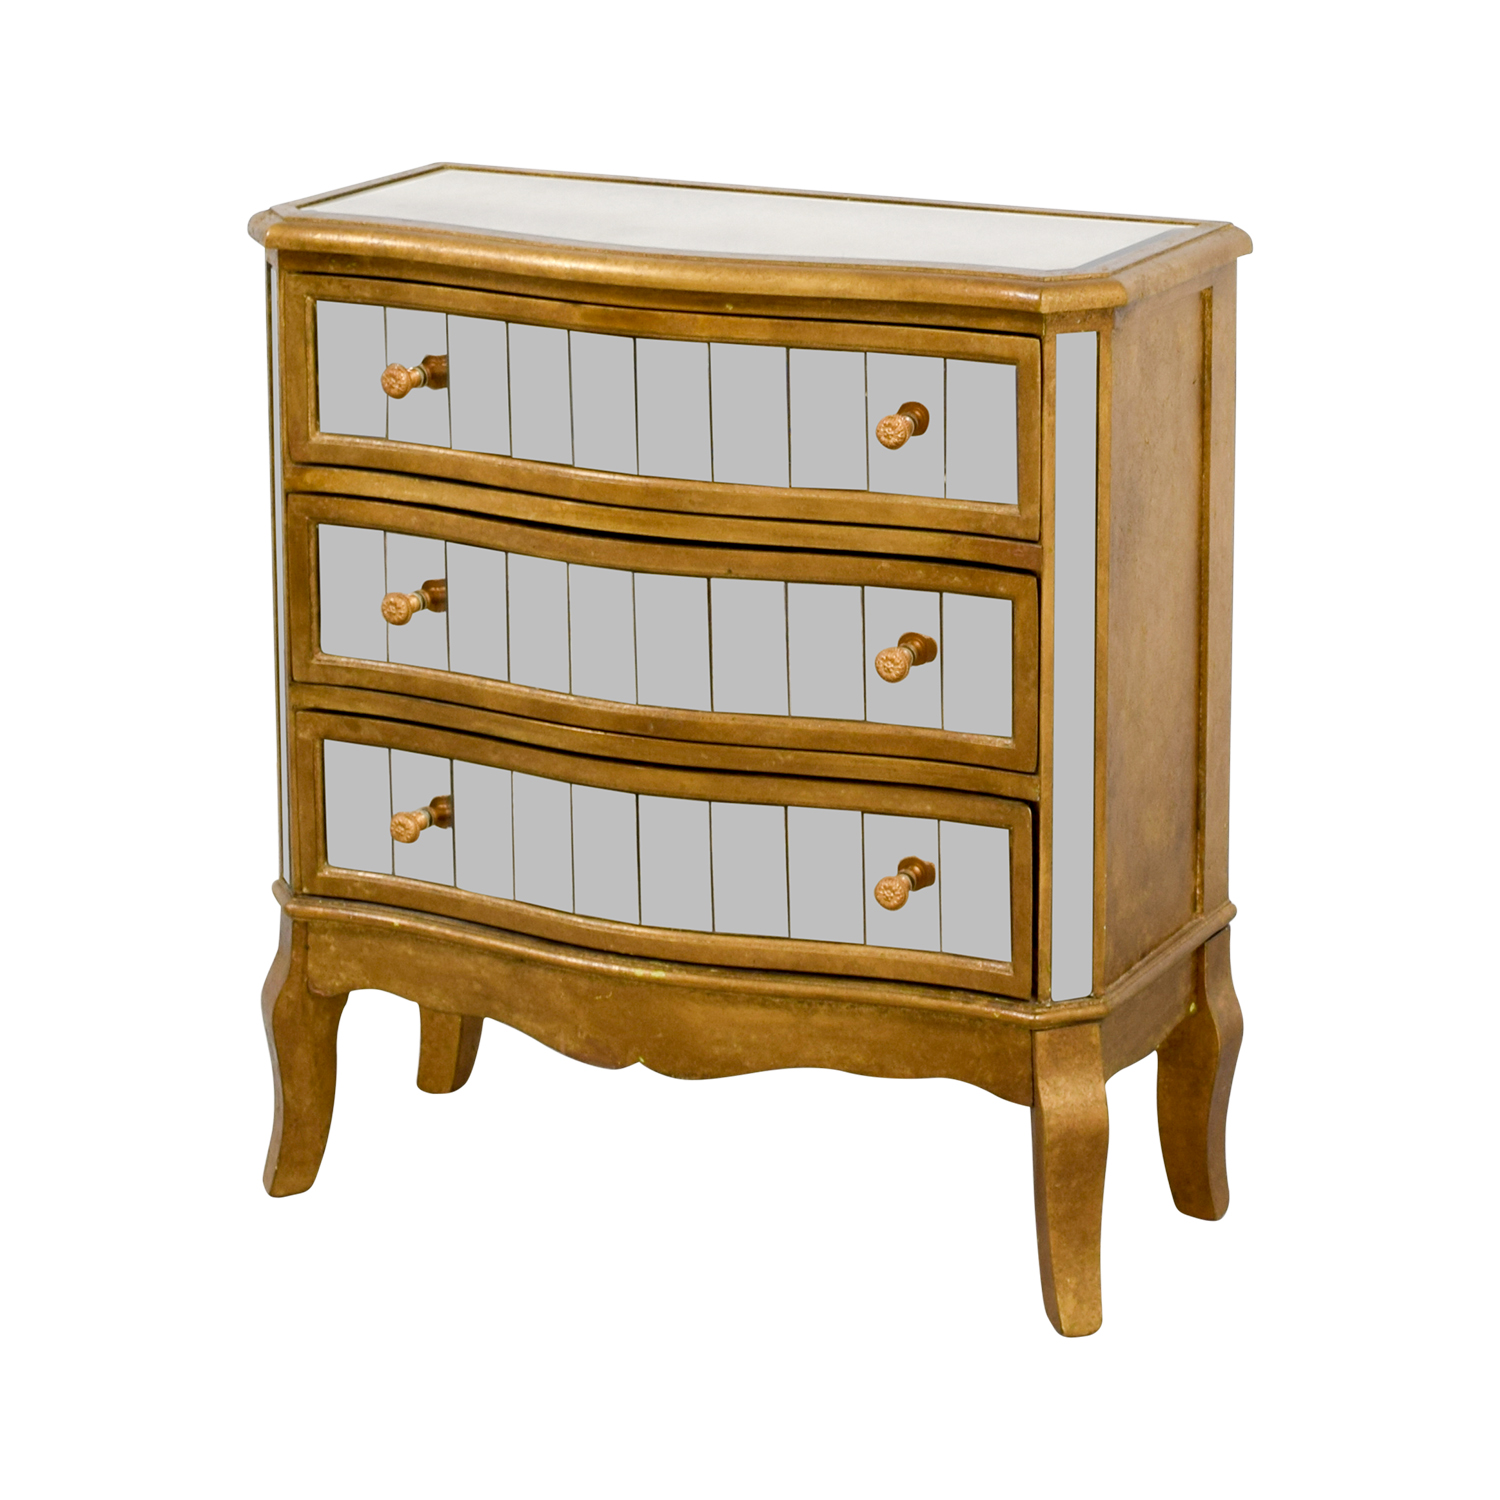 Pier 1 Imports Pier 1 Imports Mirrored Chest Gold